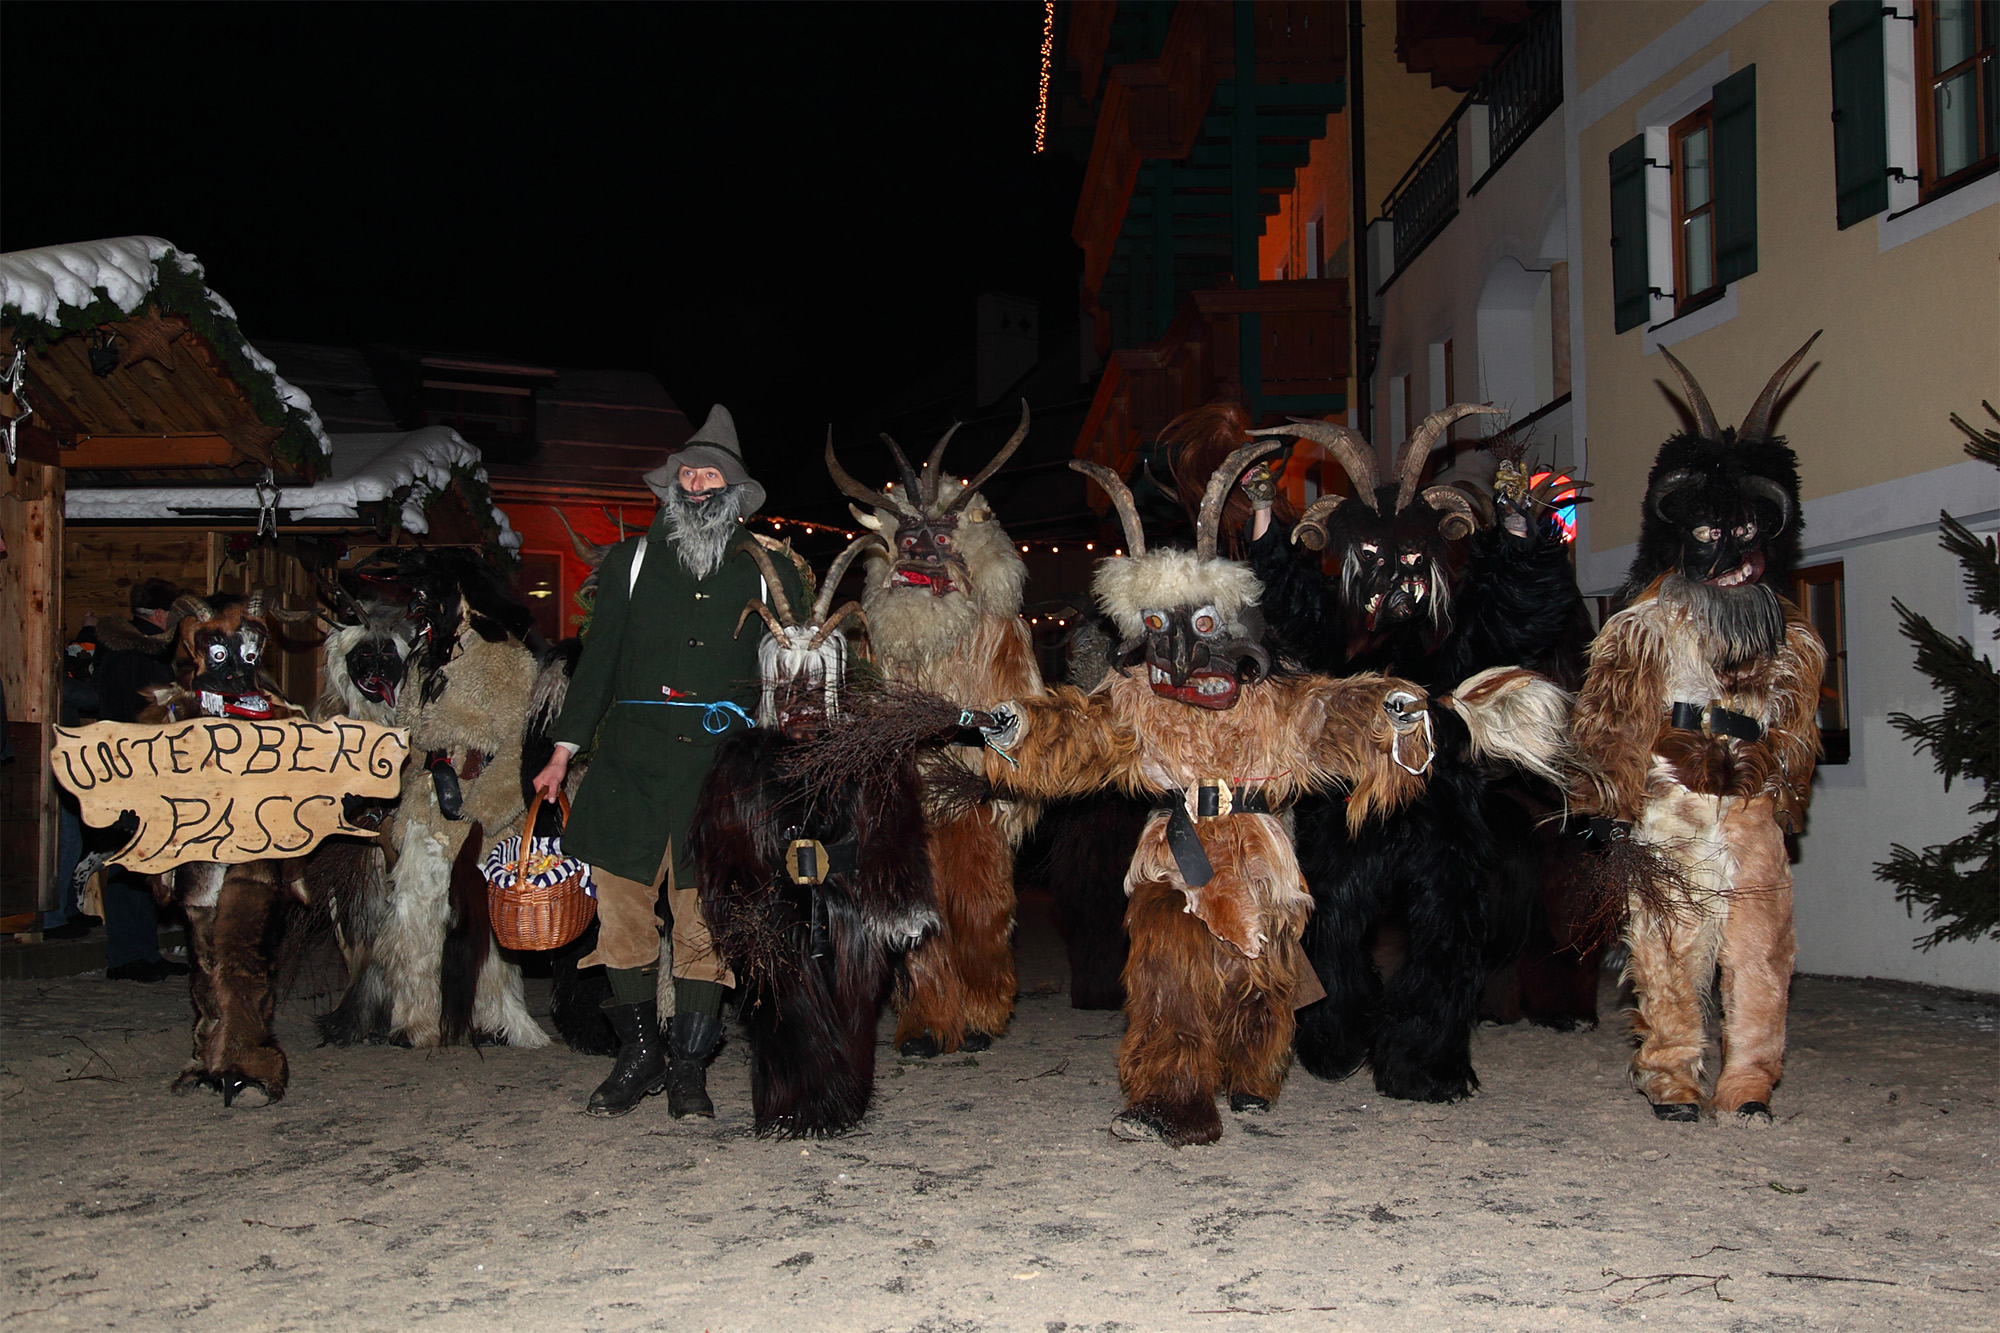 Krampus and Perchten in Grossarl